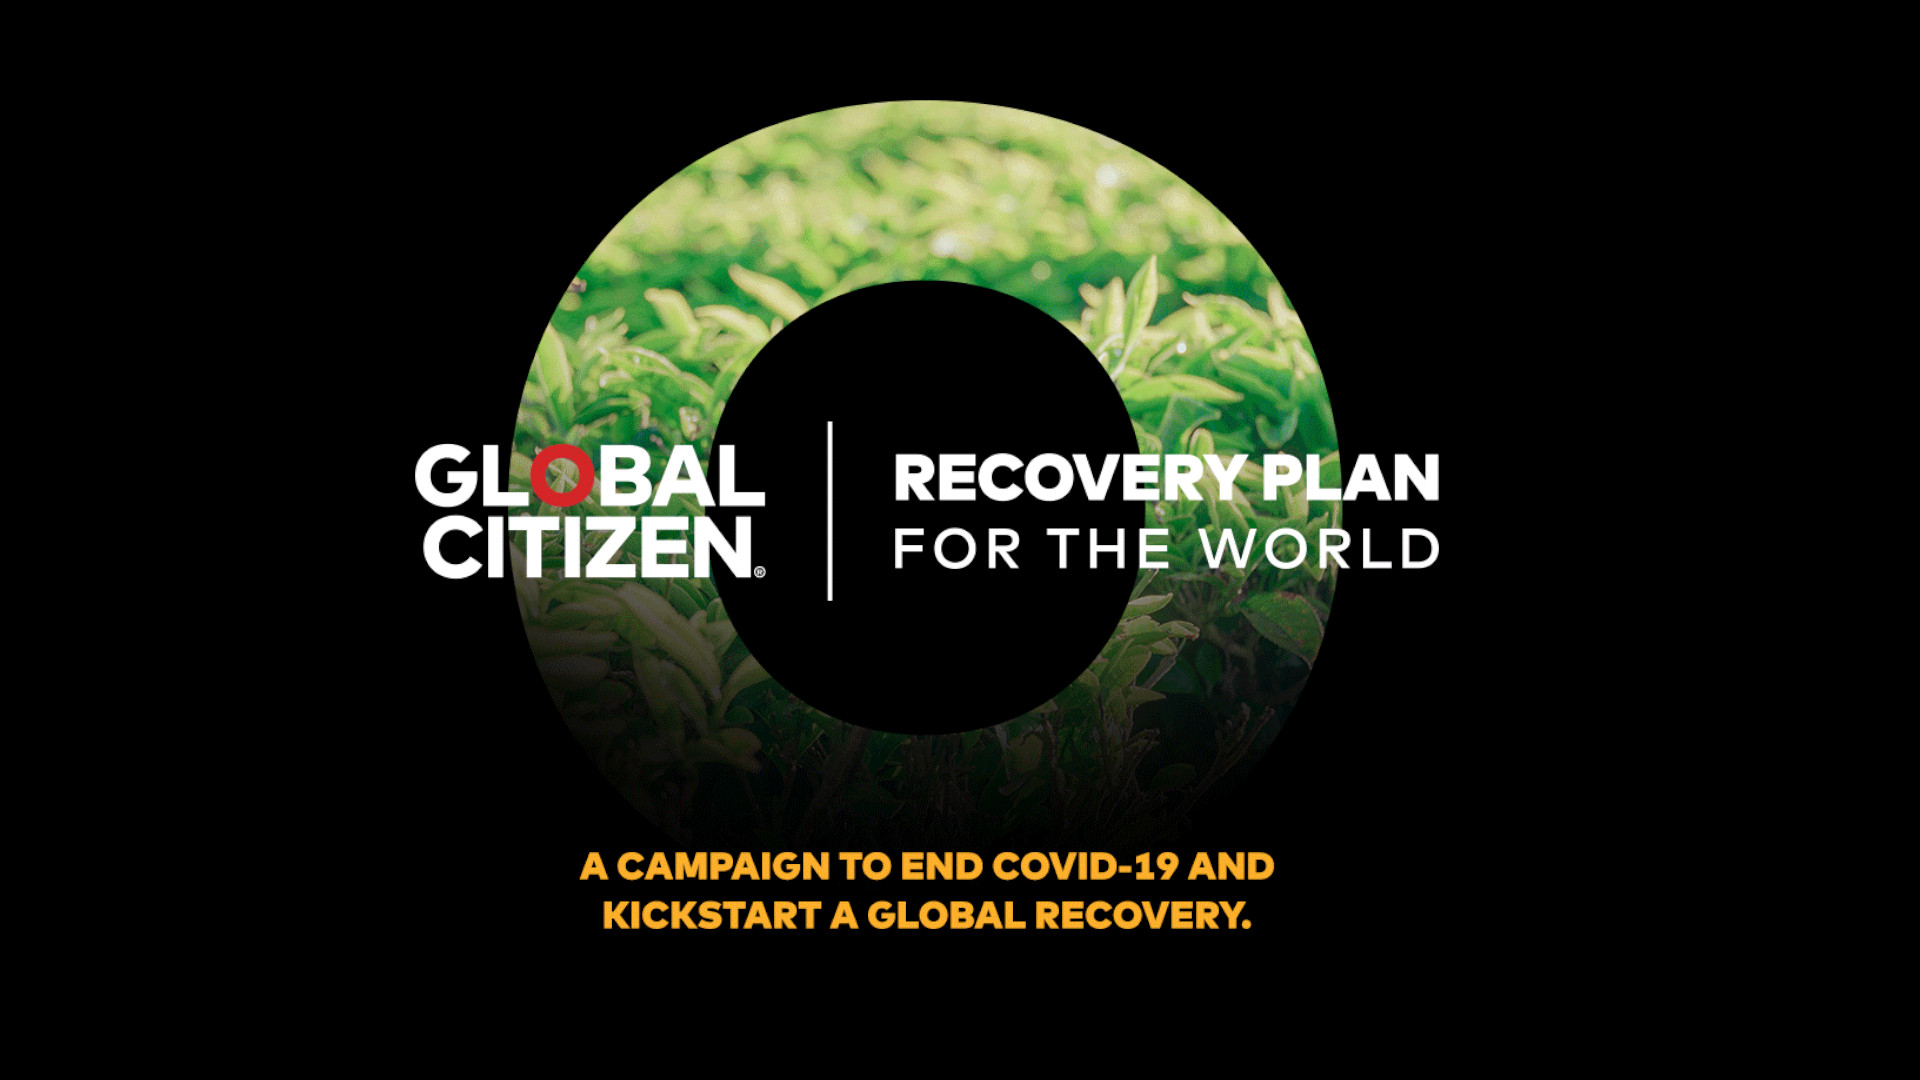 Recovery Plan for The World, Global Citizen